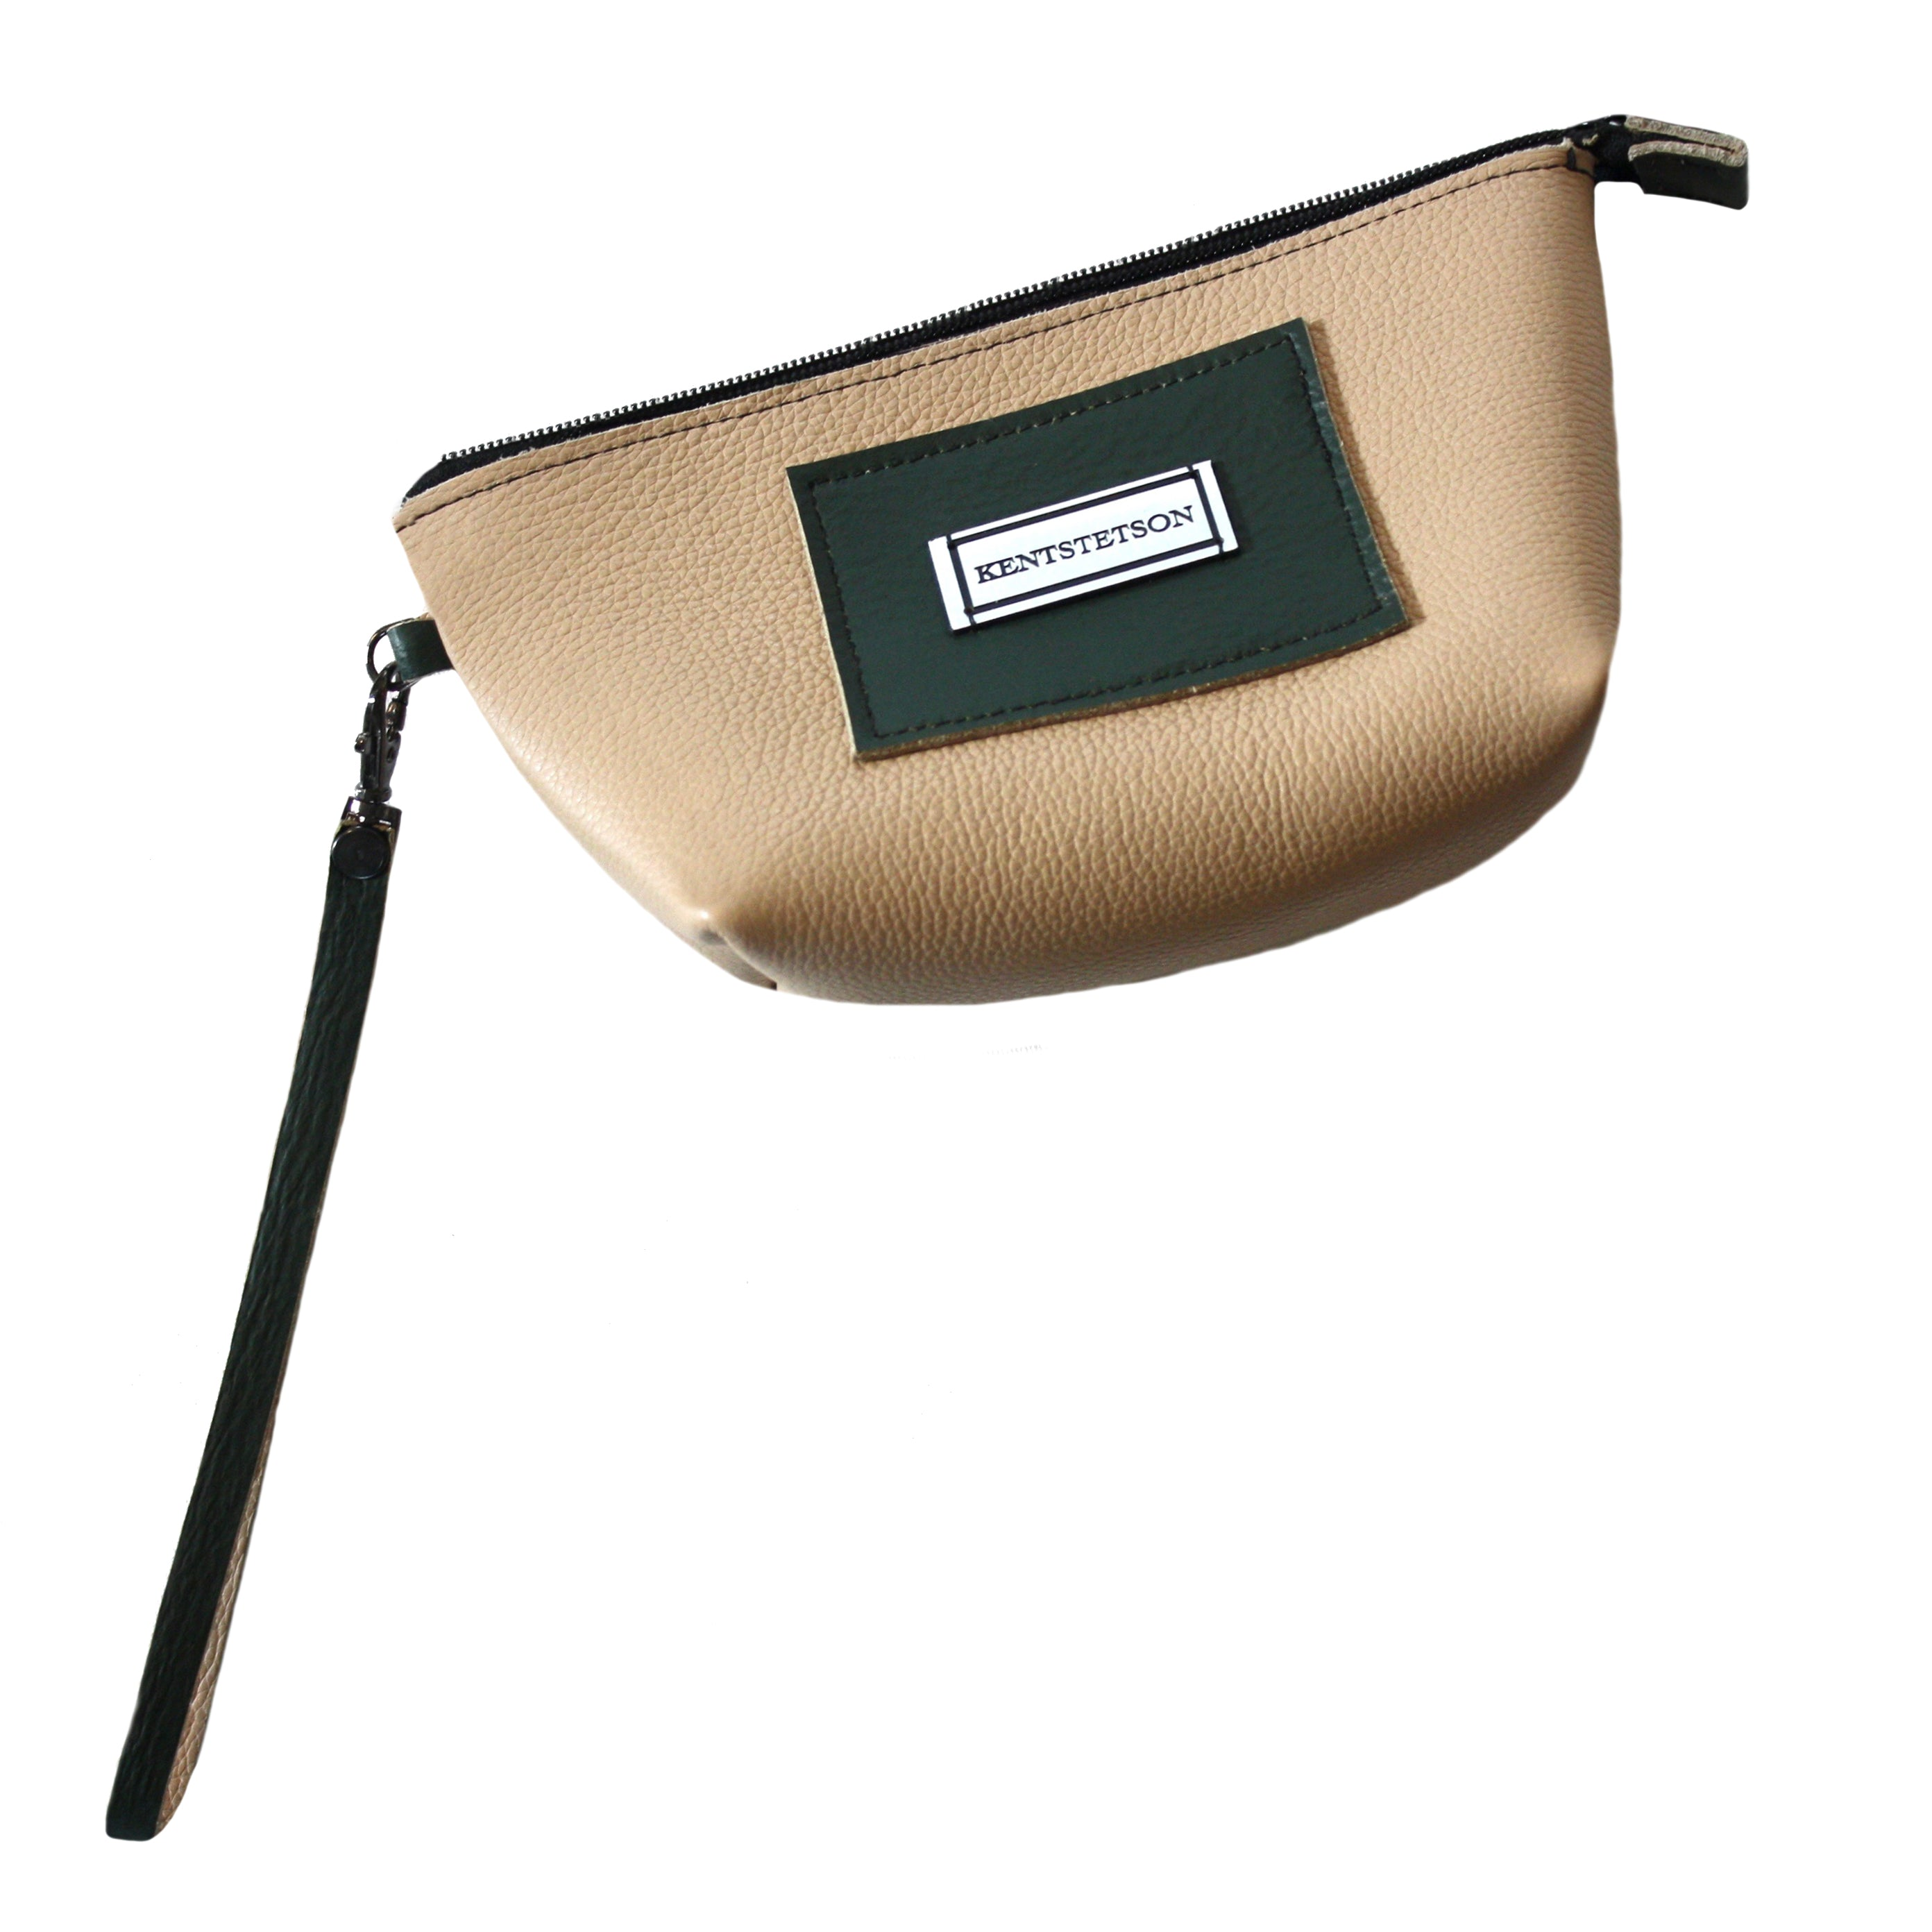 Small Cream & Dark Green Wristlet